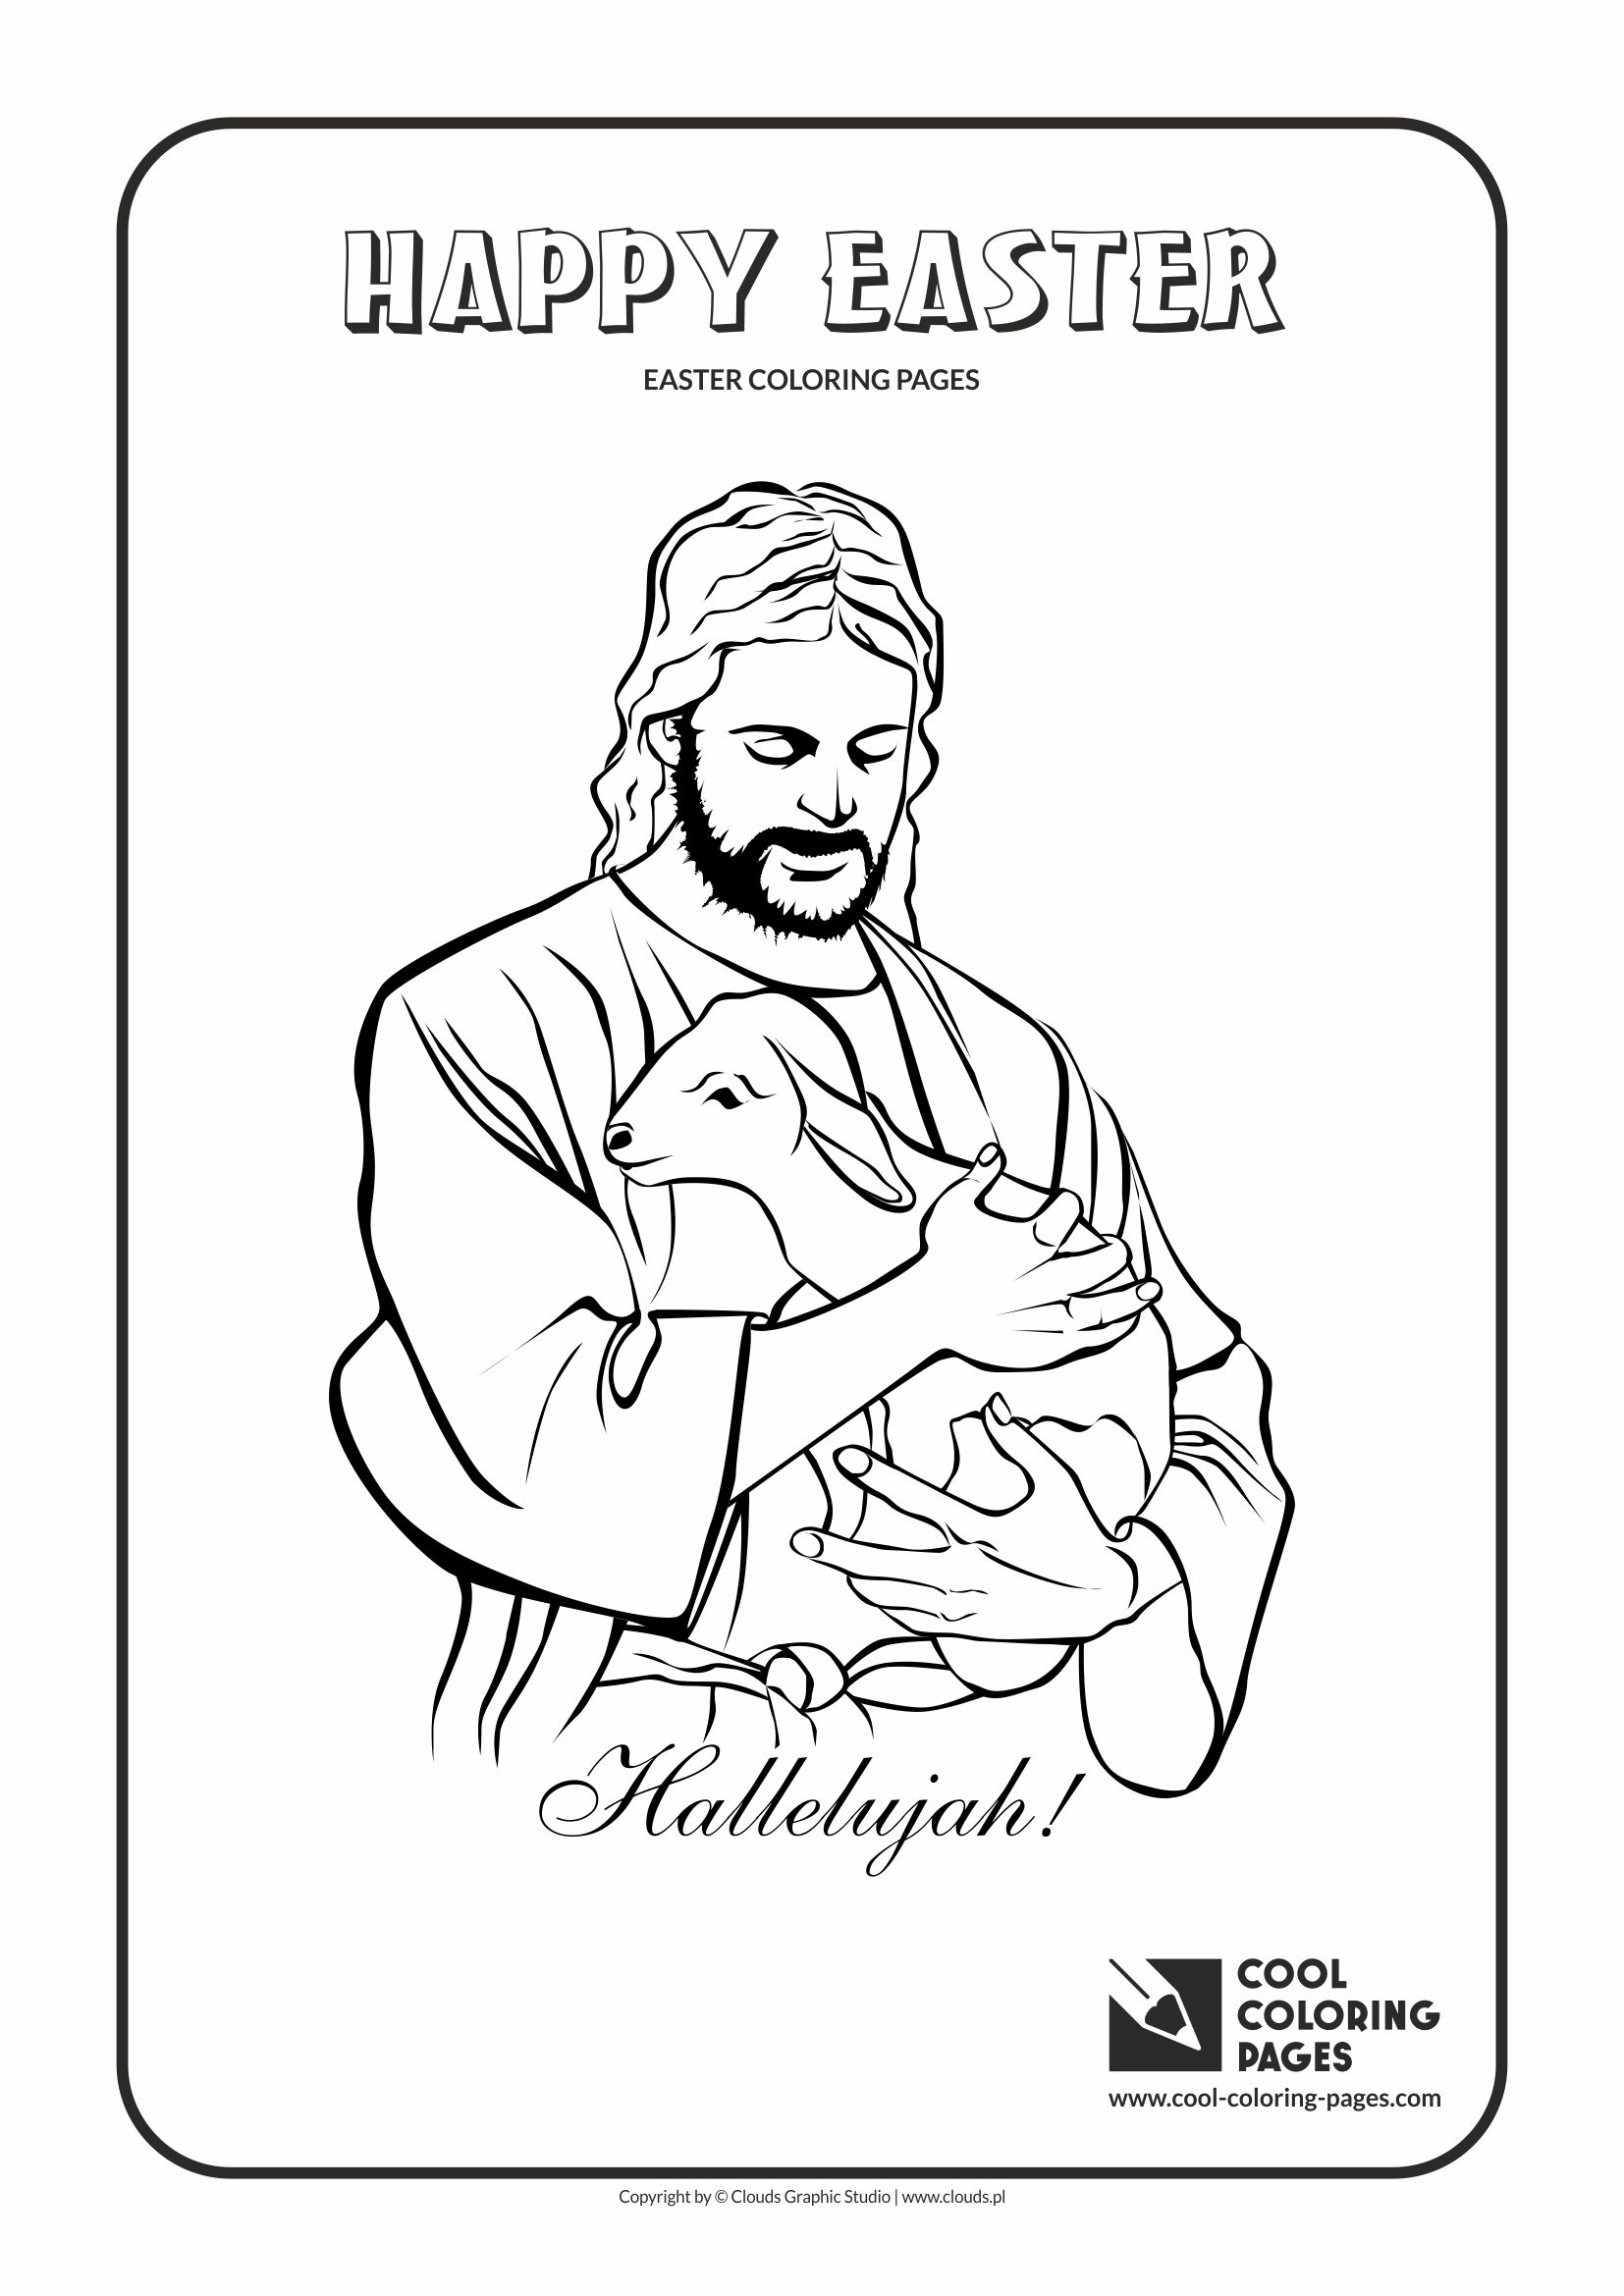 Easter coloring pages | Cool Coloring Pages